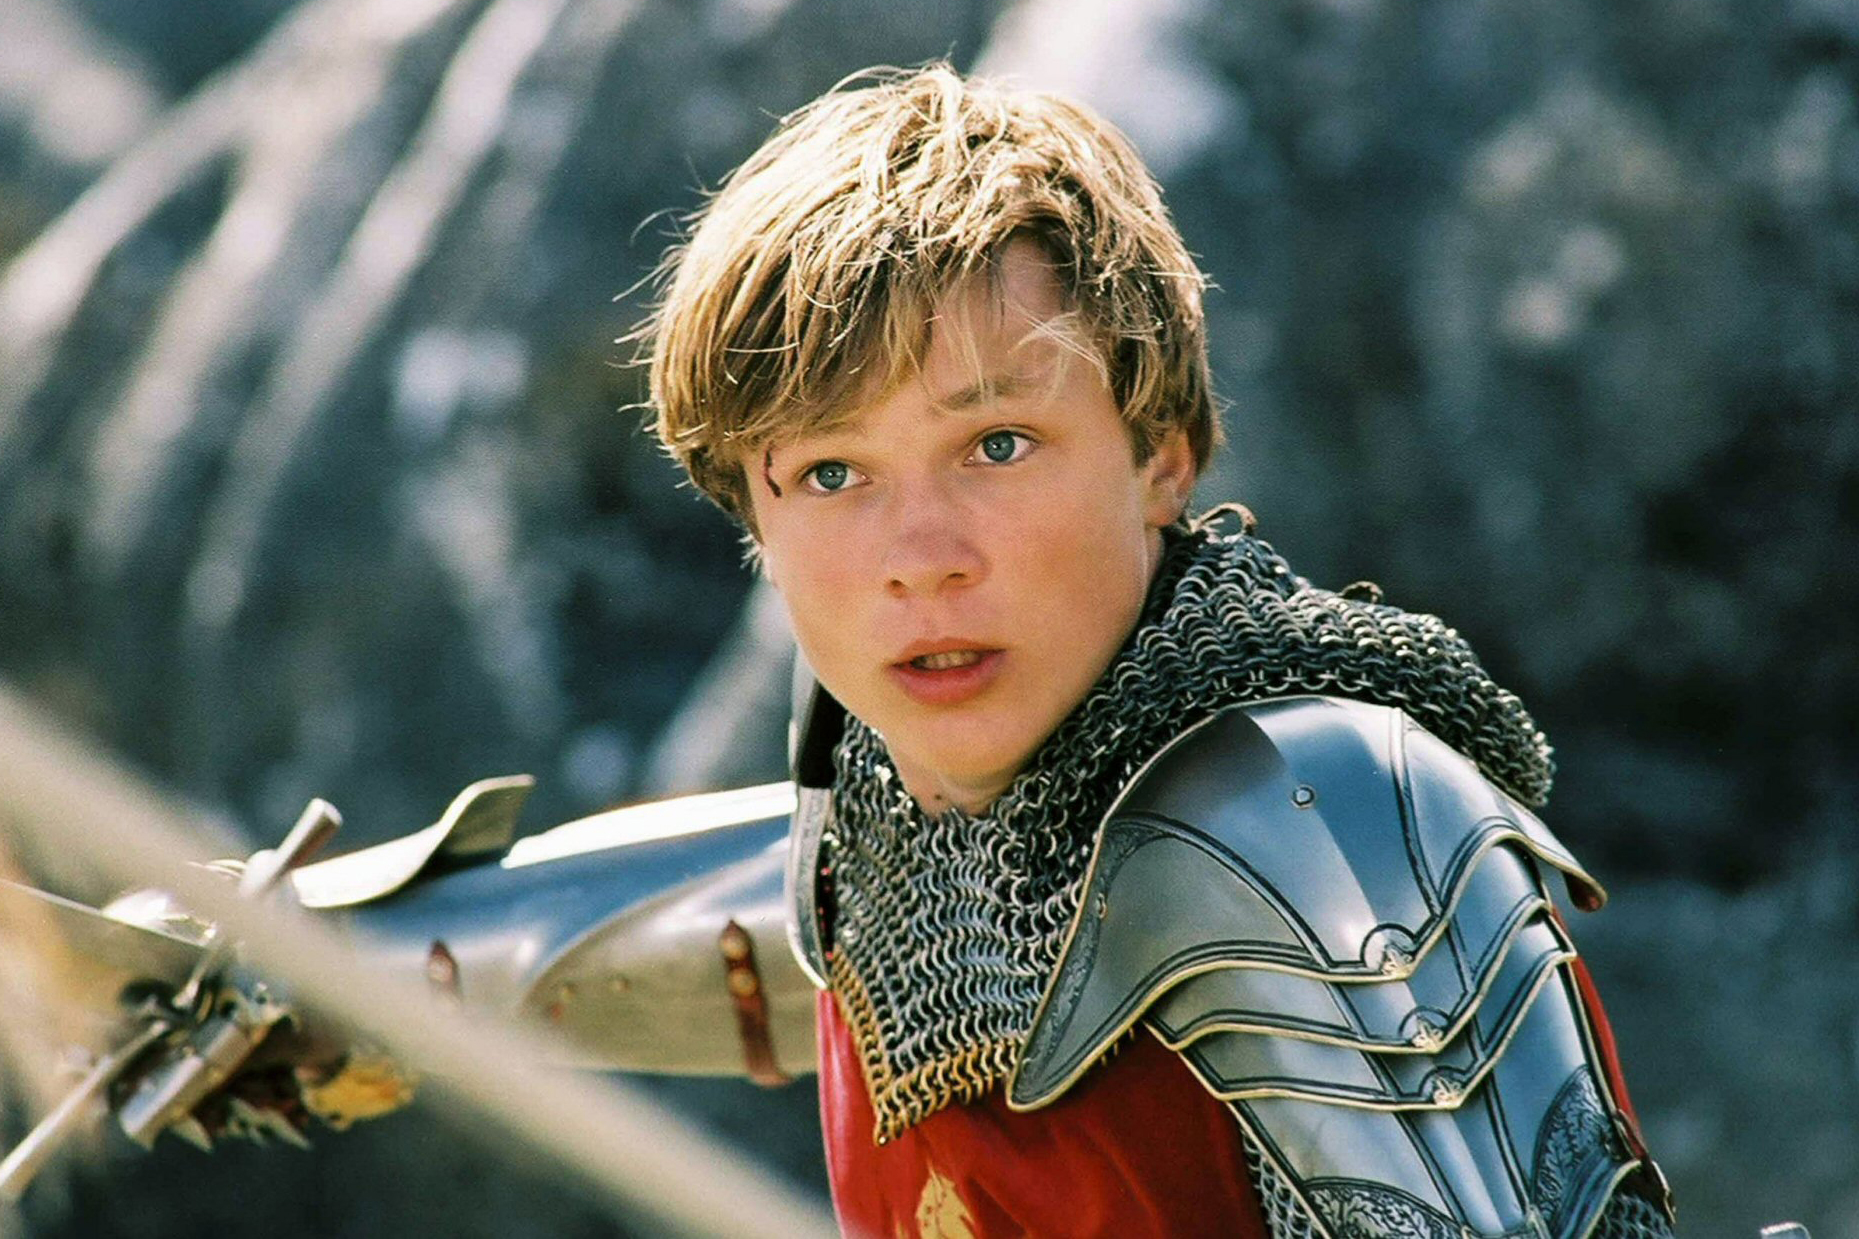 William Moseley as Peter Pevensie in The Chronicles of Narnia: The Lion, the Witch and the Wardrobe.